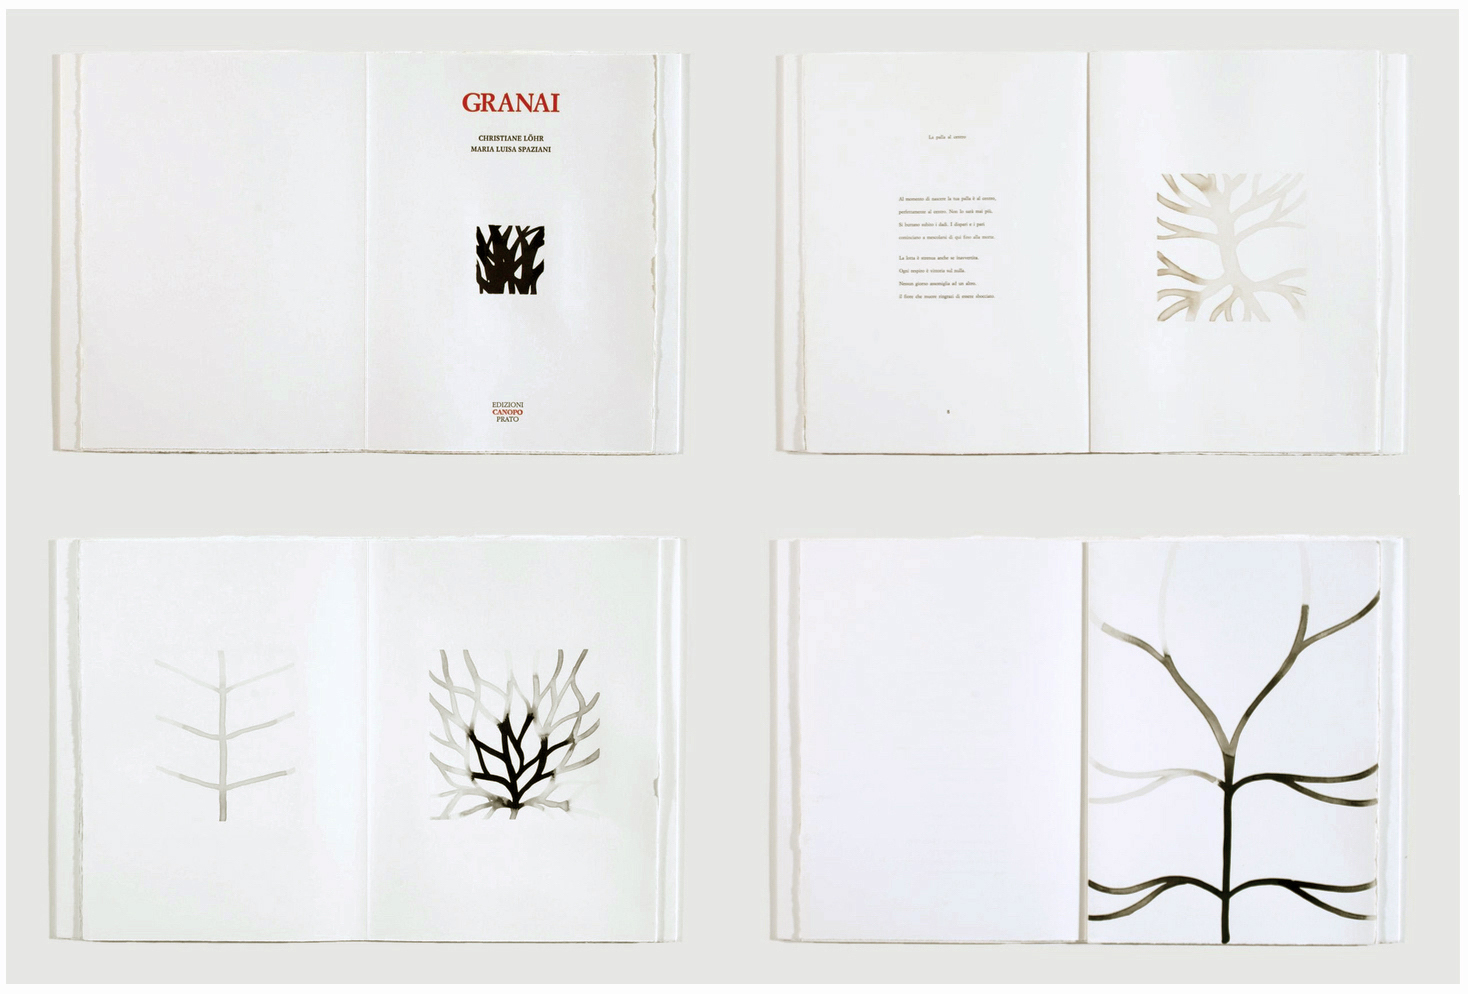 Above: Selected spreads from  GRANAI , 1999, Artist Book with unique ink drawings by Christiane Löhr and unpublished poems by Maria Luisa Spaziani, 14 x 10 1/4 inches, Edizioni Canopo, Prato.